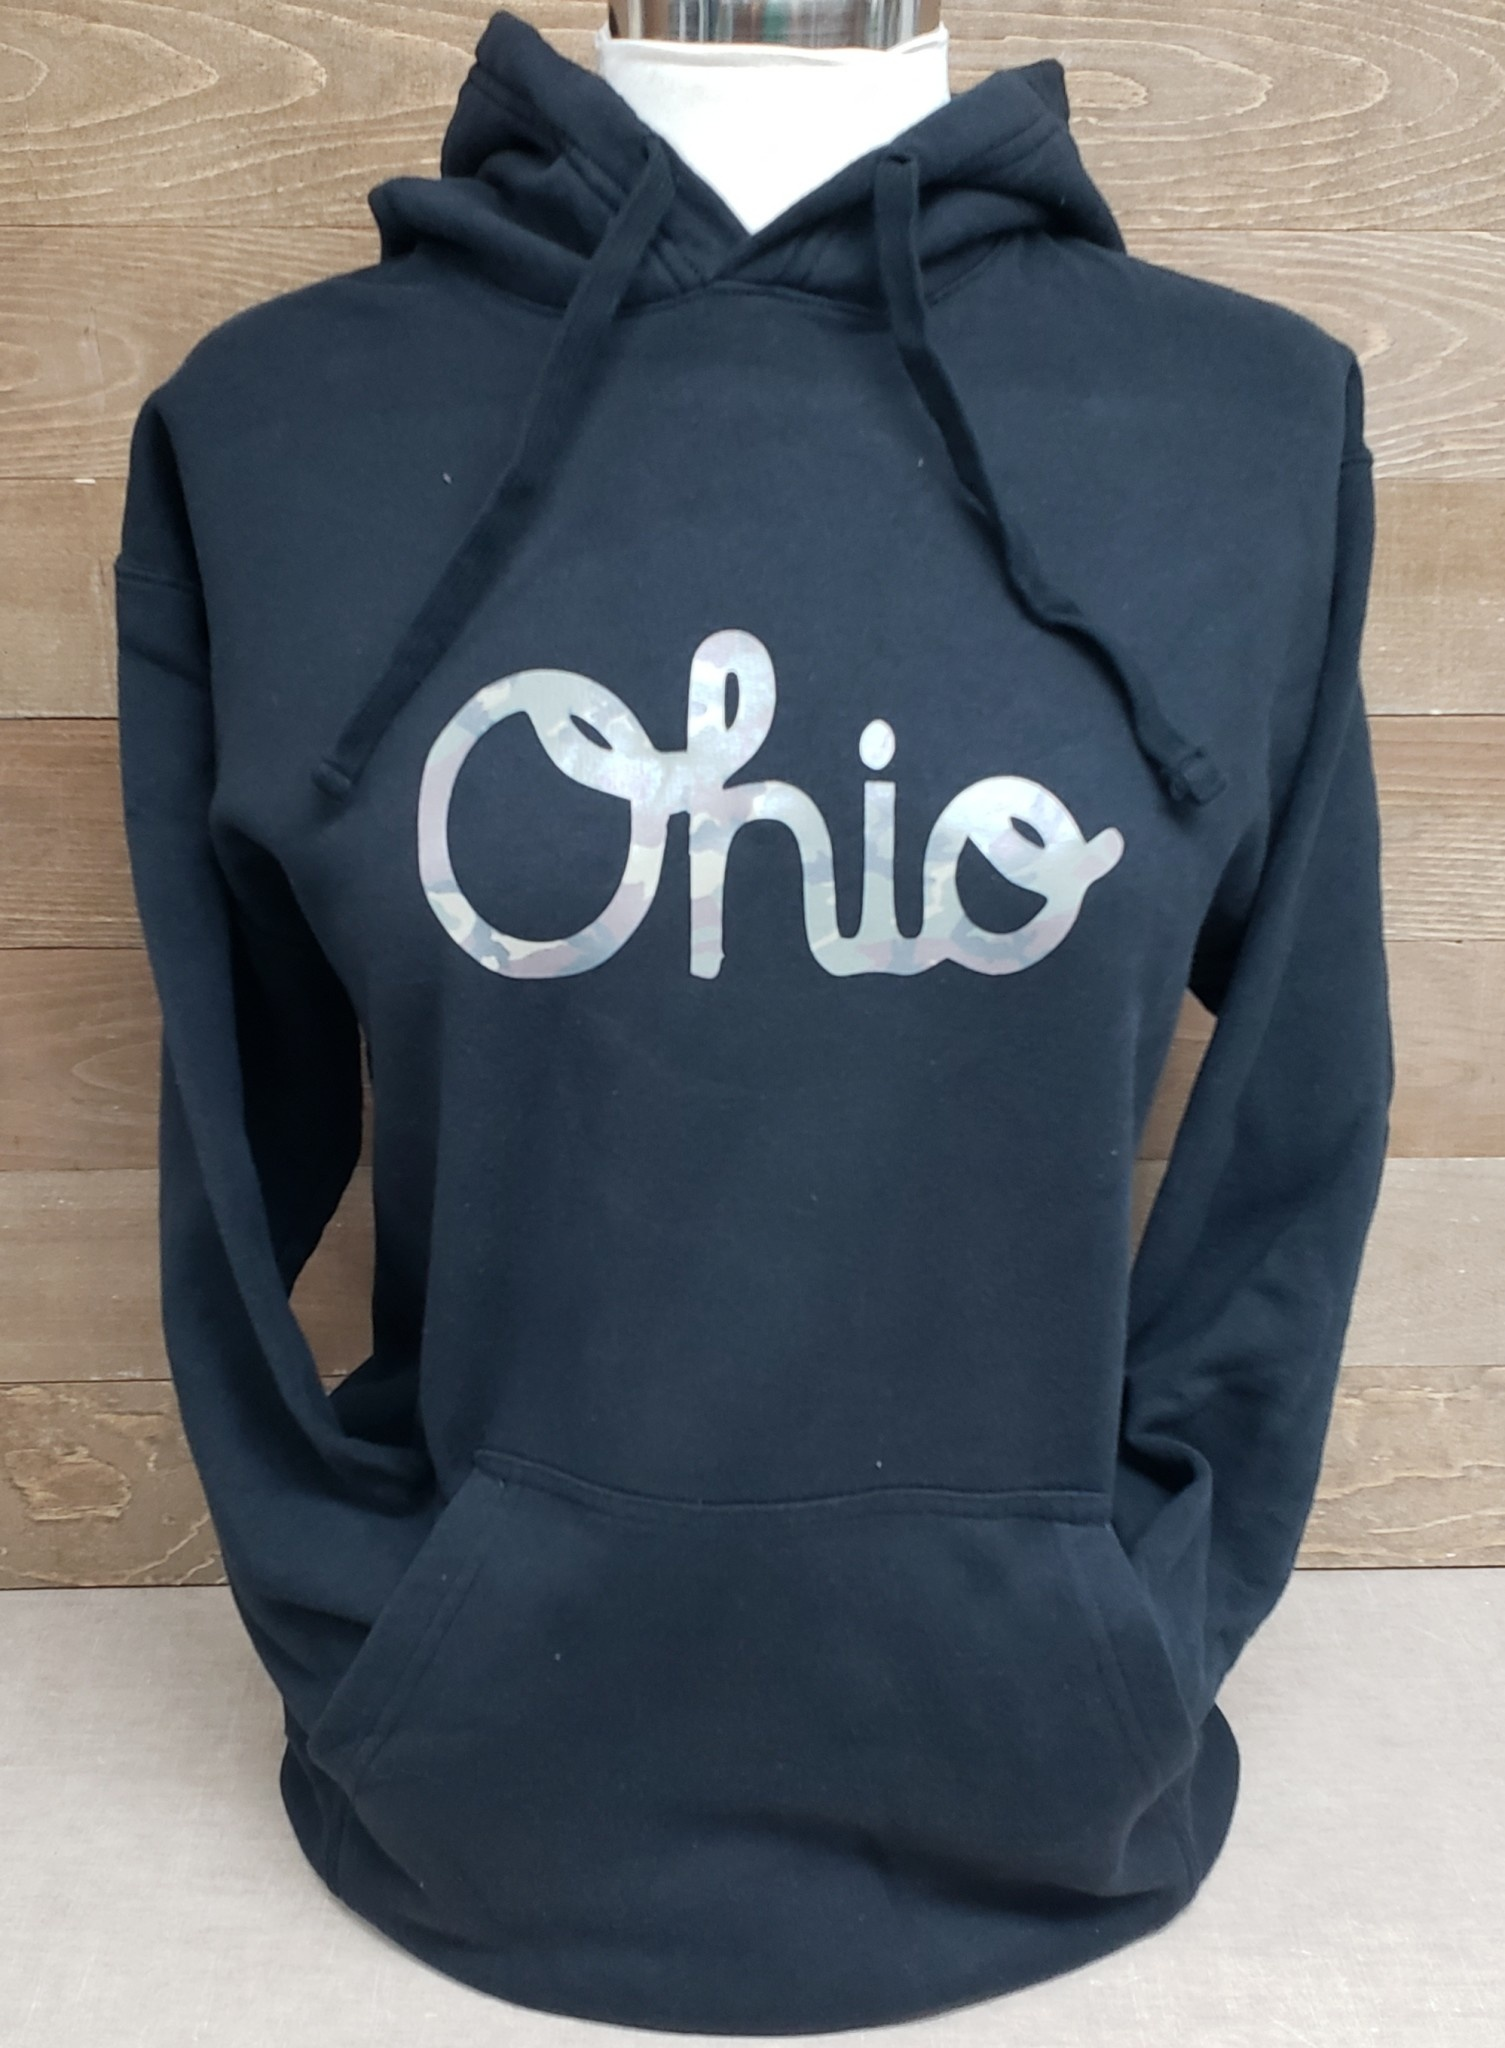 Ohio Script Camo Black Hooded Sweatshirt